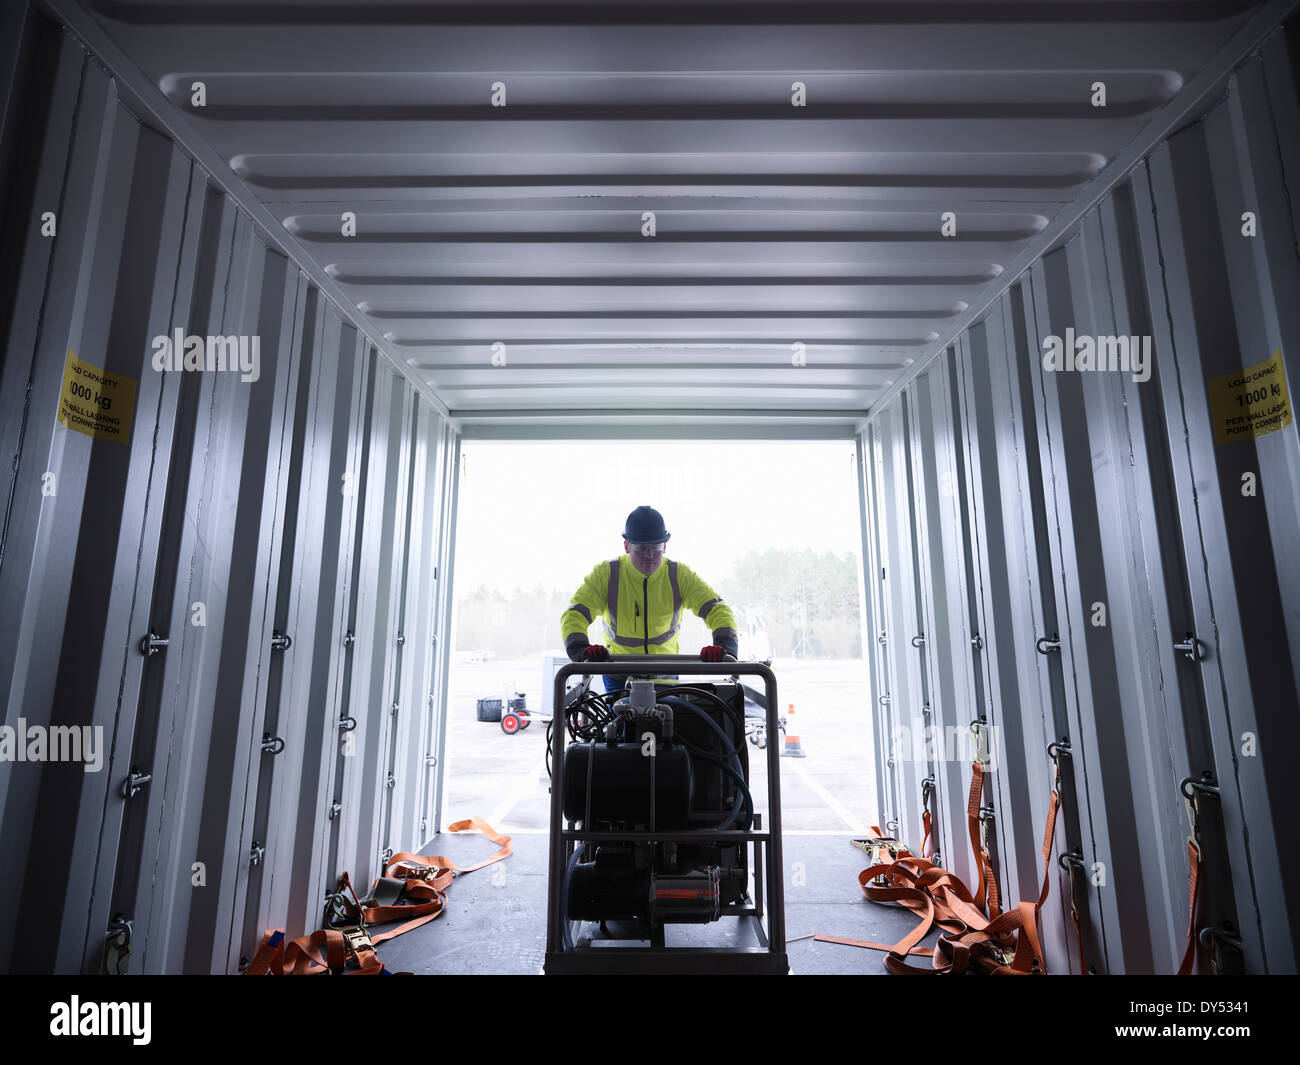 Emergency Response Team worker unloads equipment from shipping container Stock Photo